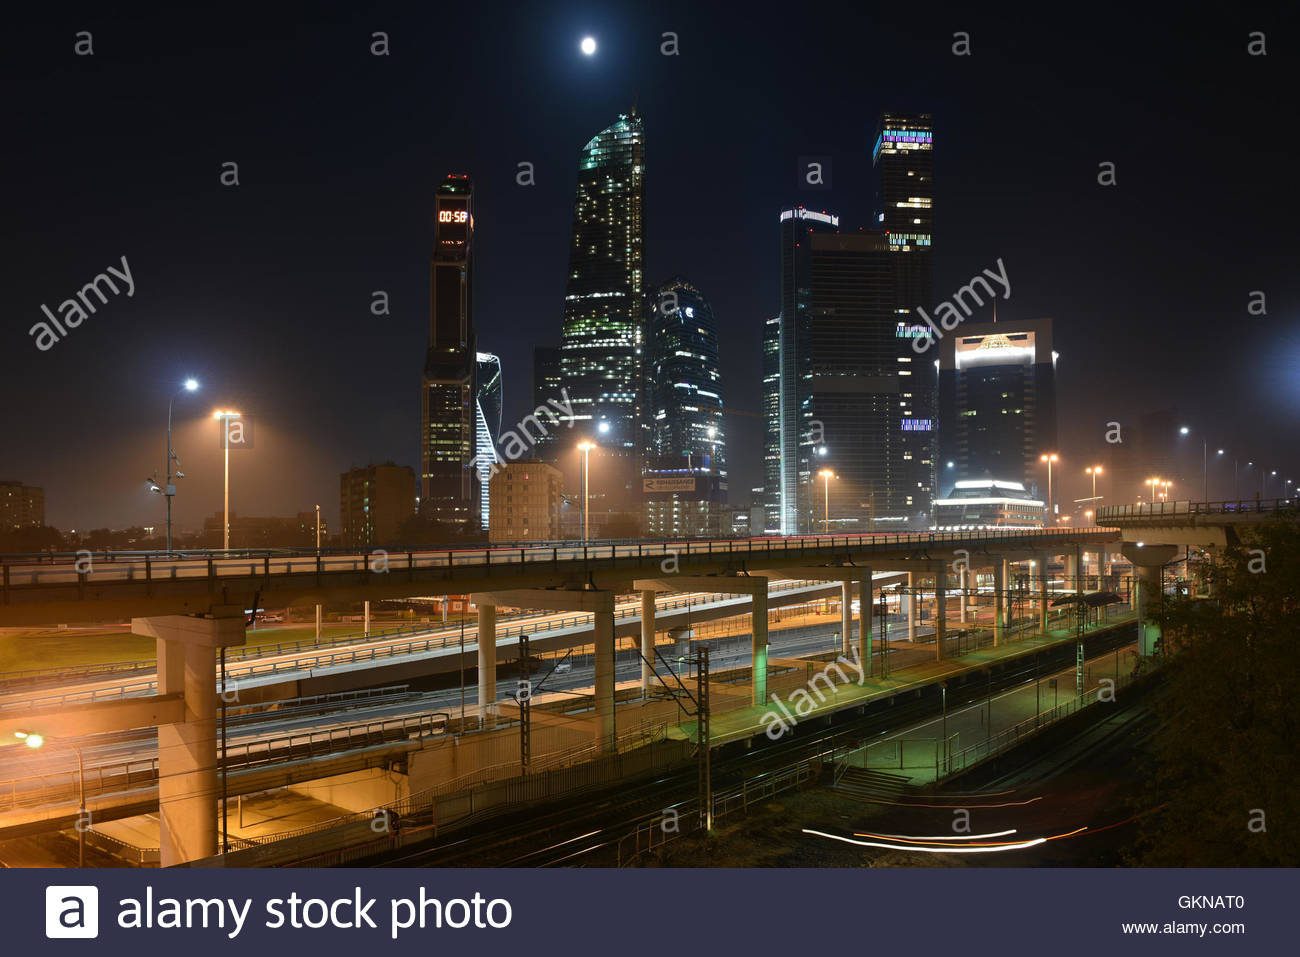 Business center 'Moscow city'. Night panorama of the big city. - Stock Image